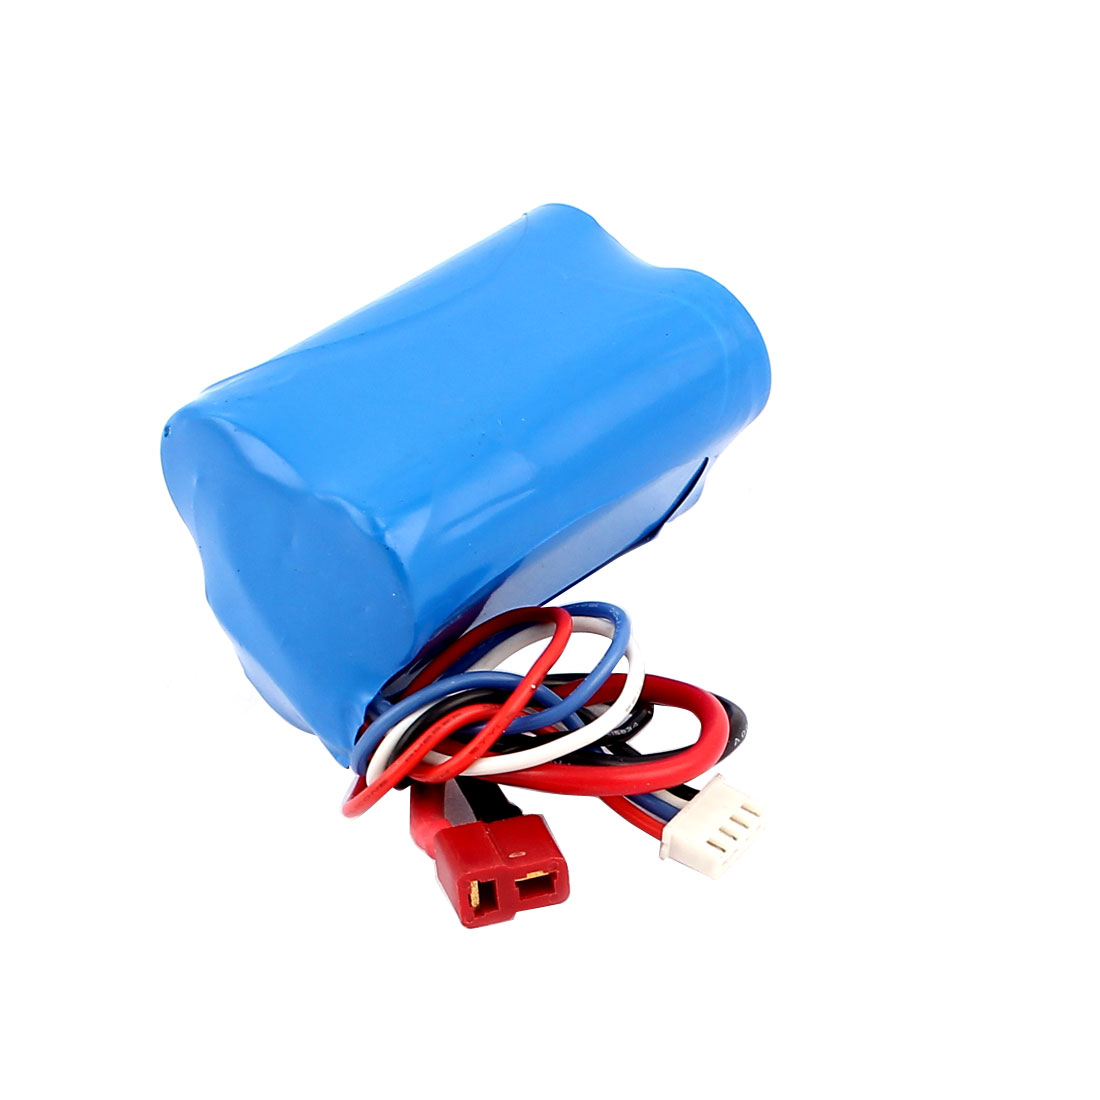 JST-XH T Plug 4-Pin Connector Rechargeable 3S Lithium Li-po Battery 11.1V 2000mAh 15C for FQ777-60 RC Model Helicopter